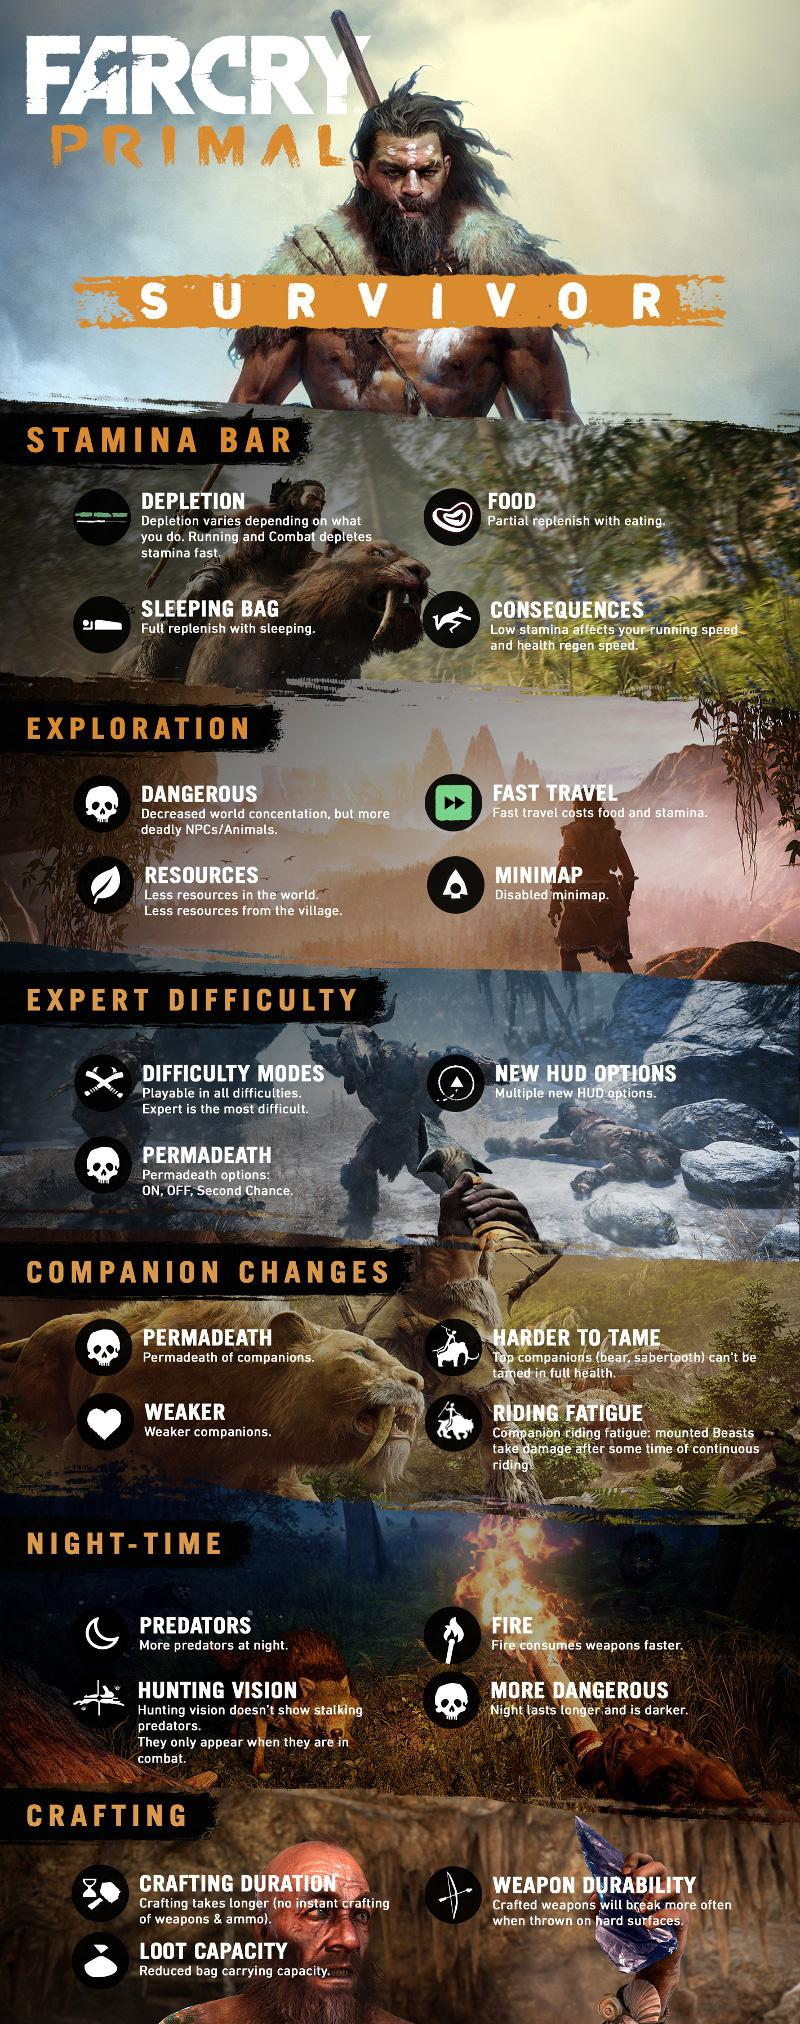 survivior far cry primal updates